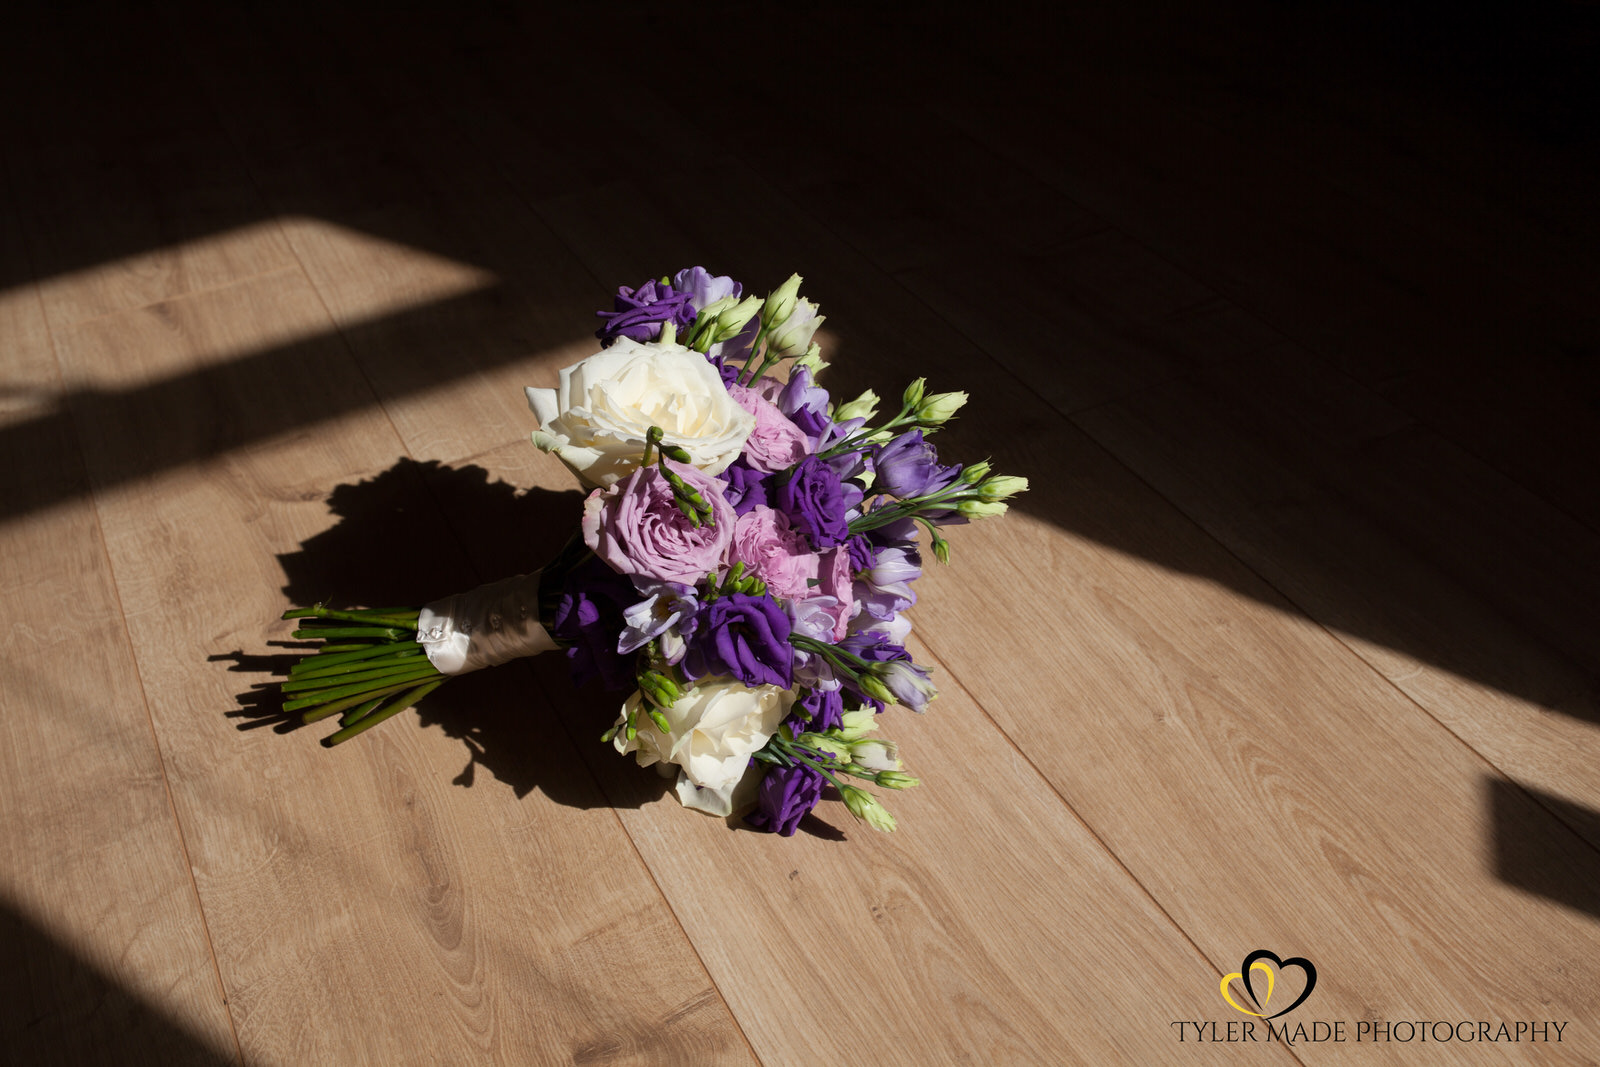 Brides Flowers for Wedding at The Barn, Upchurch Wedding Venue by Kent Wedding Photographer Tyler Made Photography